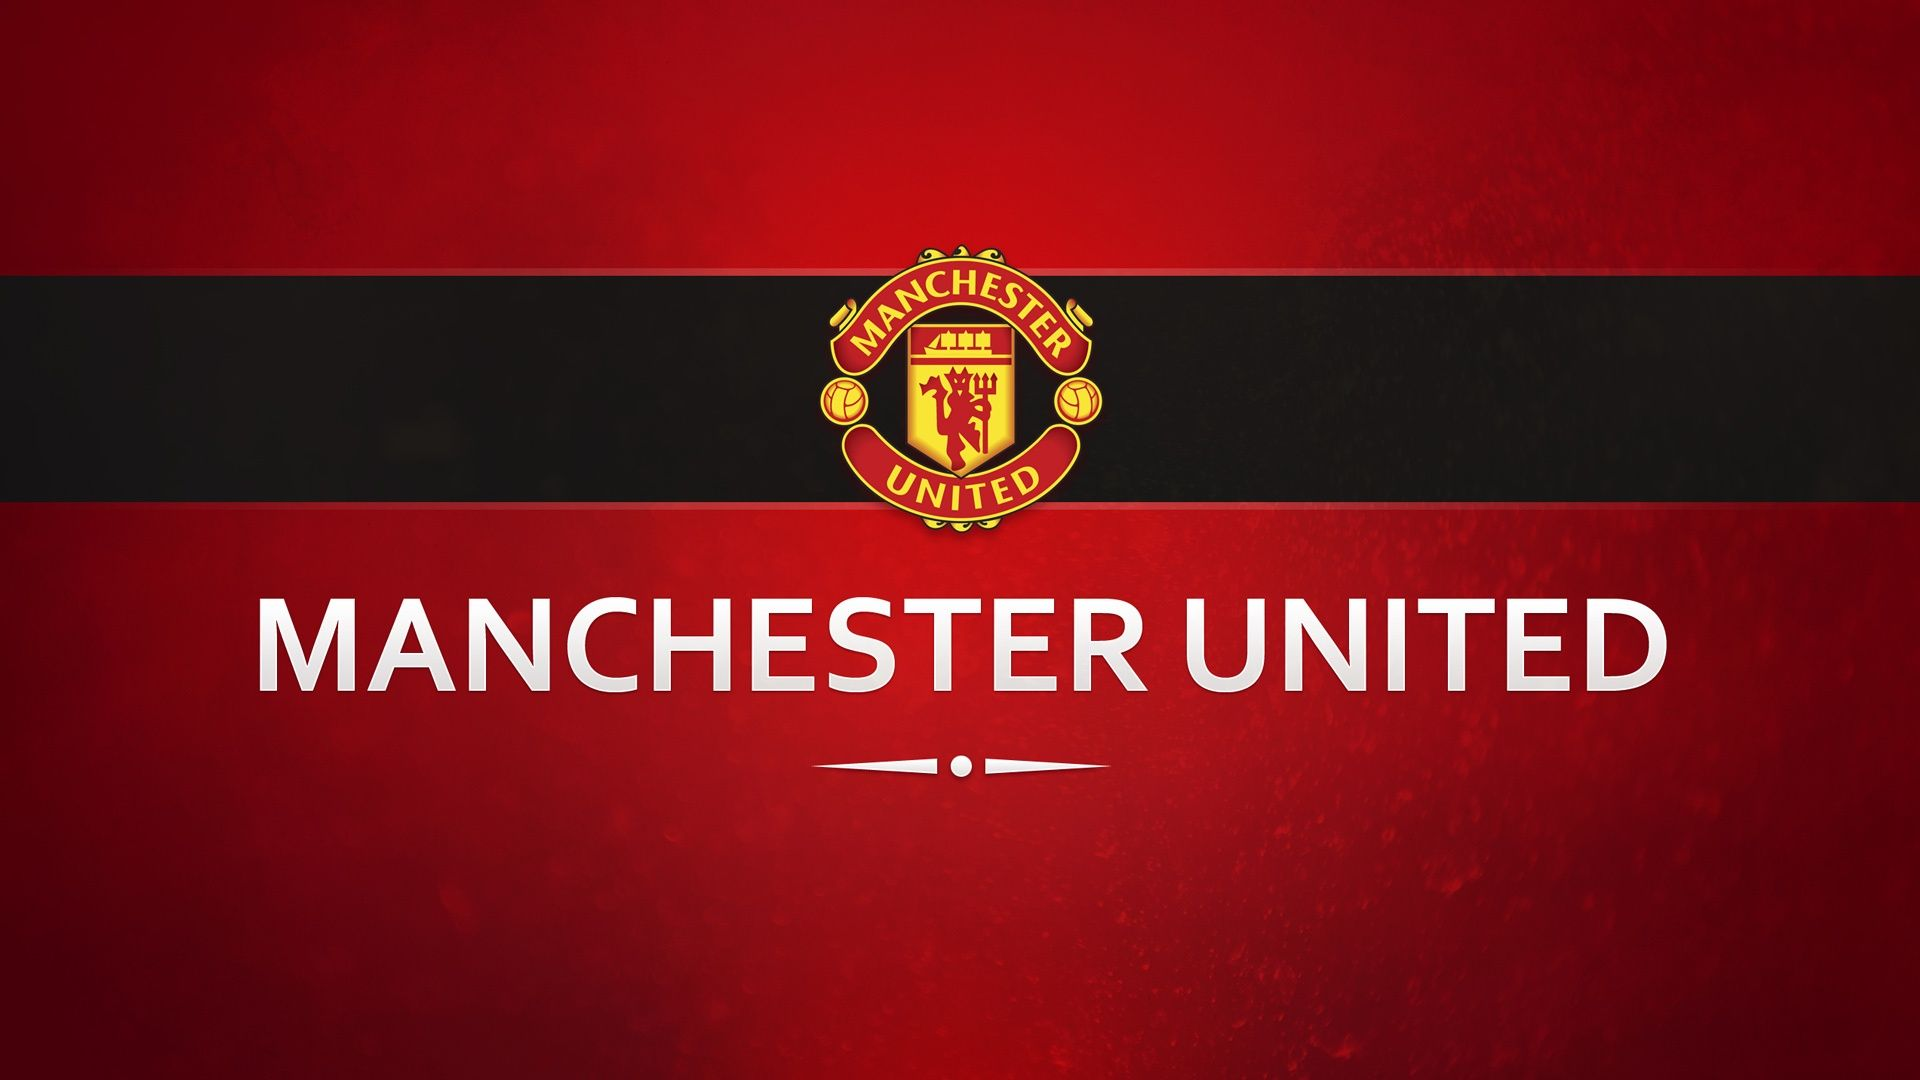 Manchester united wallpaper iamunited pinterest - Cool man united wallpapers ...